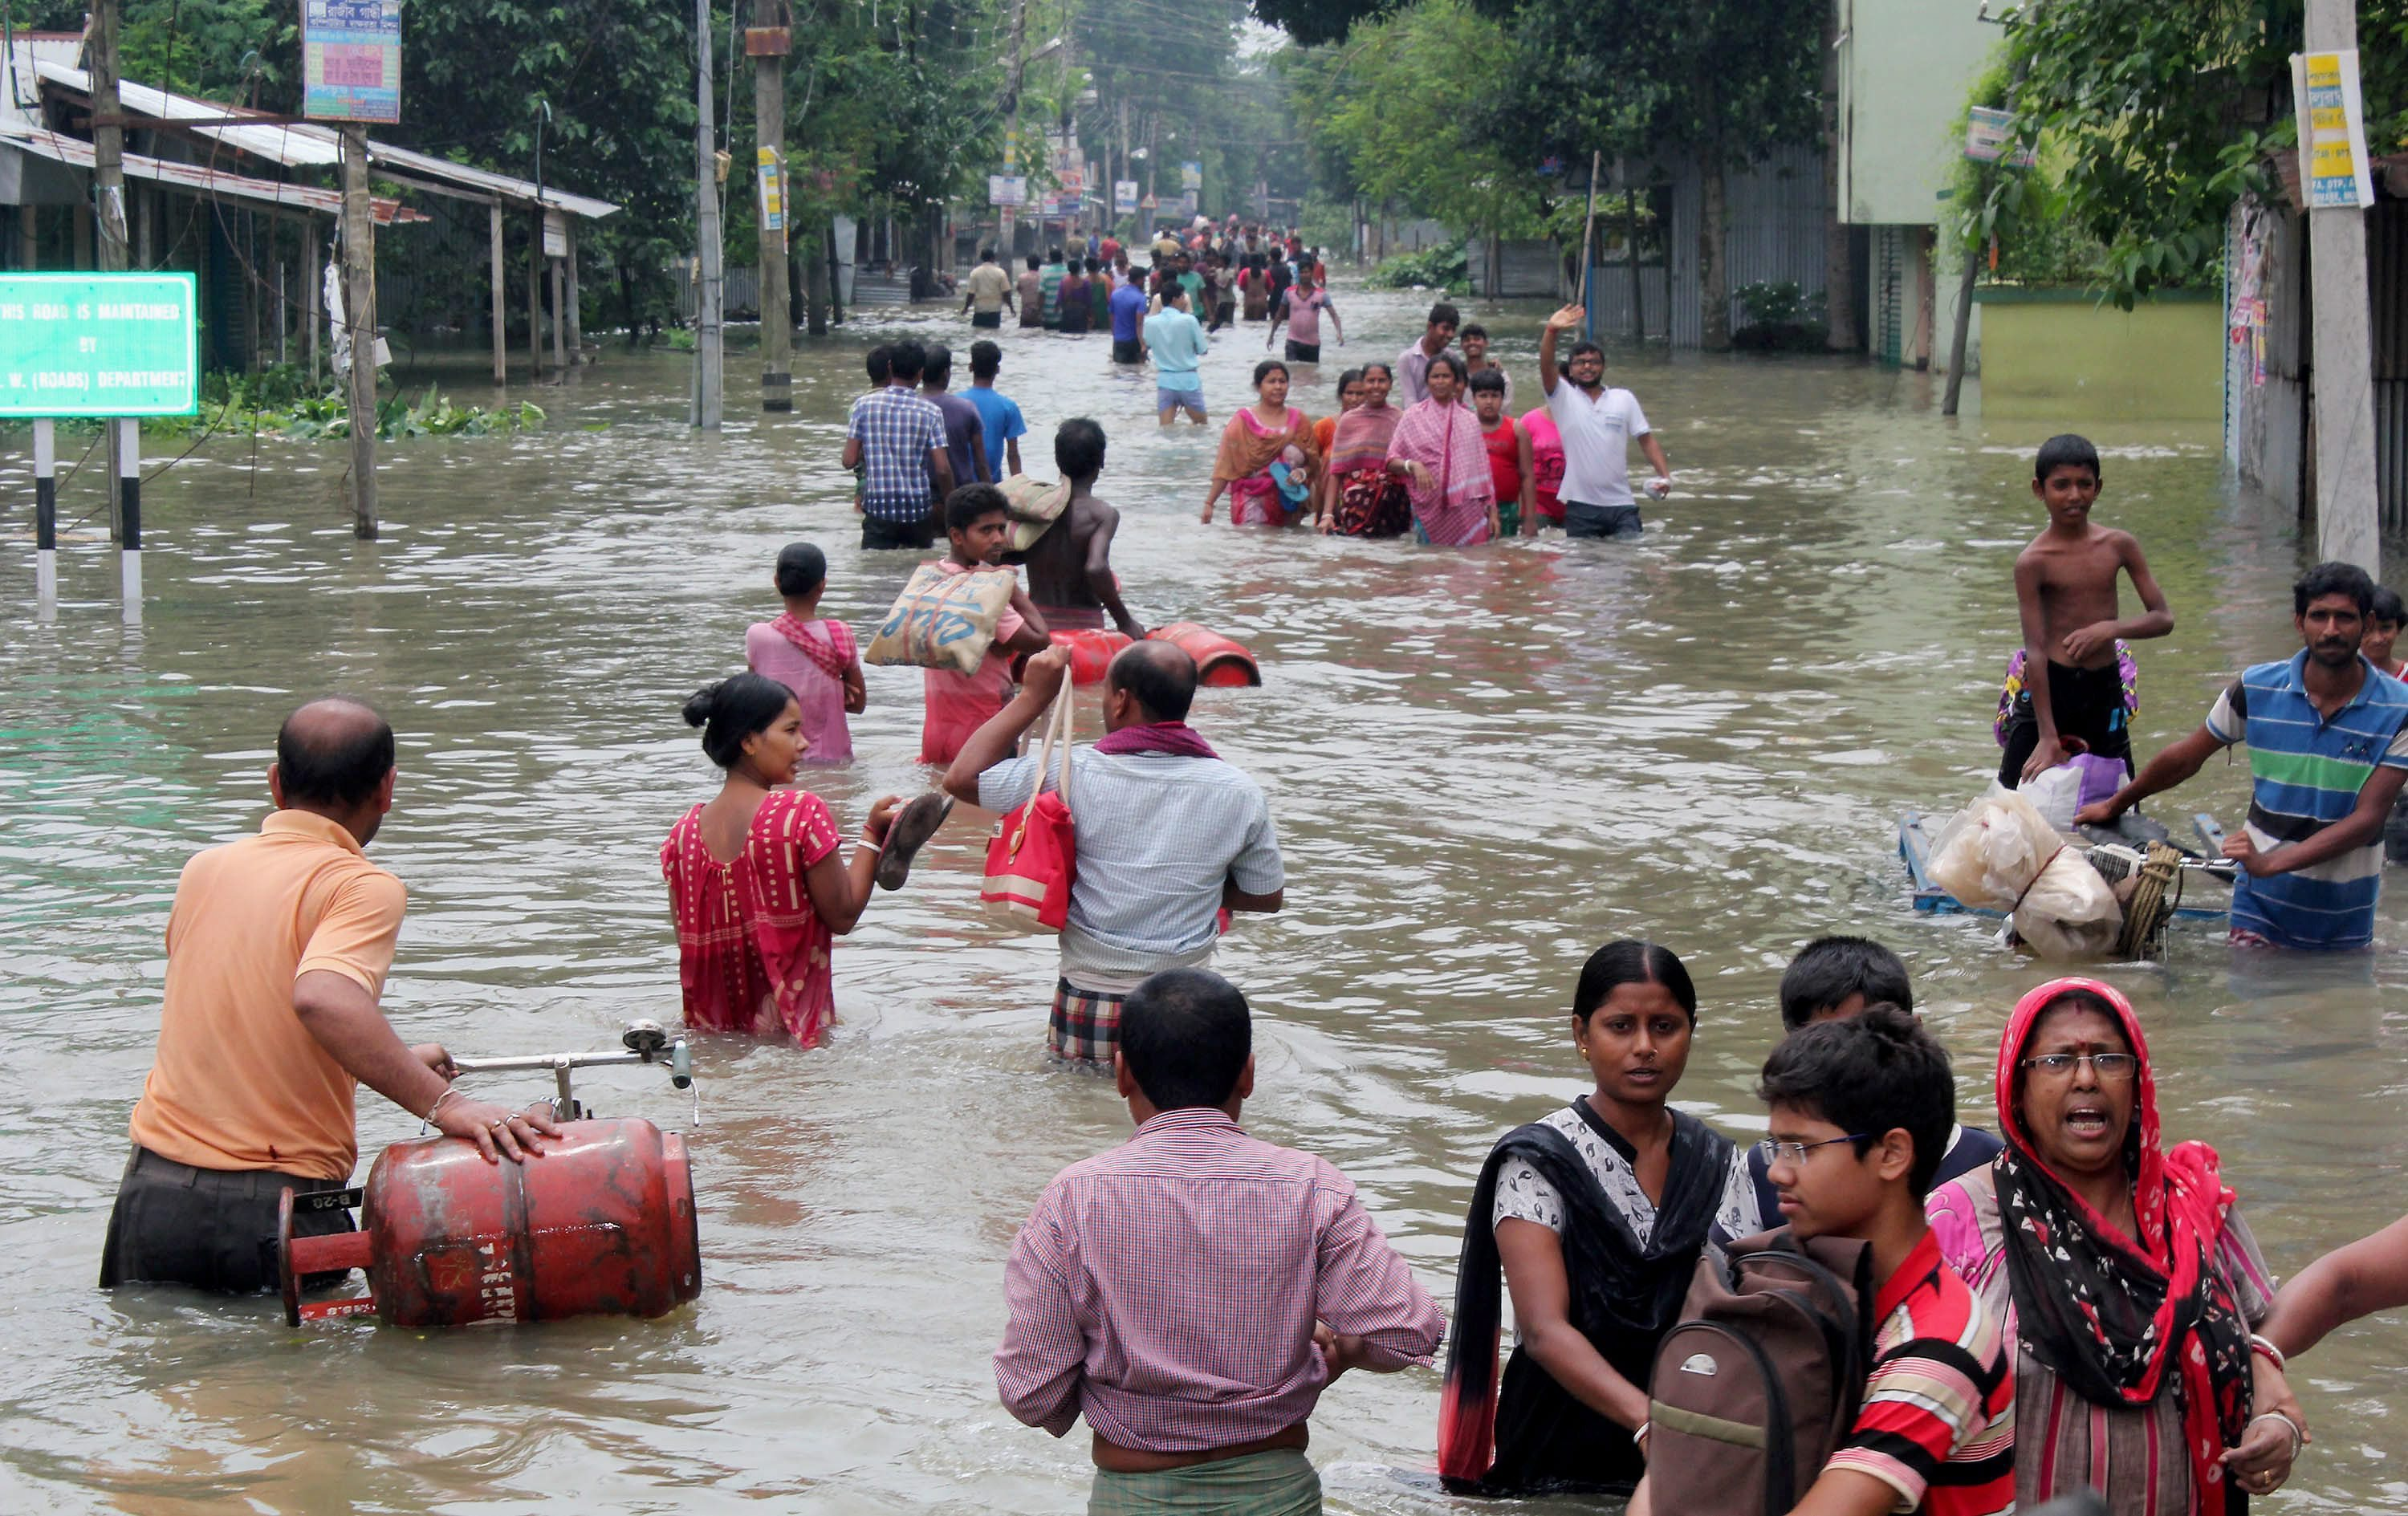 People wade through a flooded road in Bularghat in West Bengal's South Dinajpur district. (Credit: PTI)